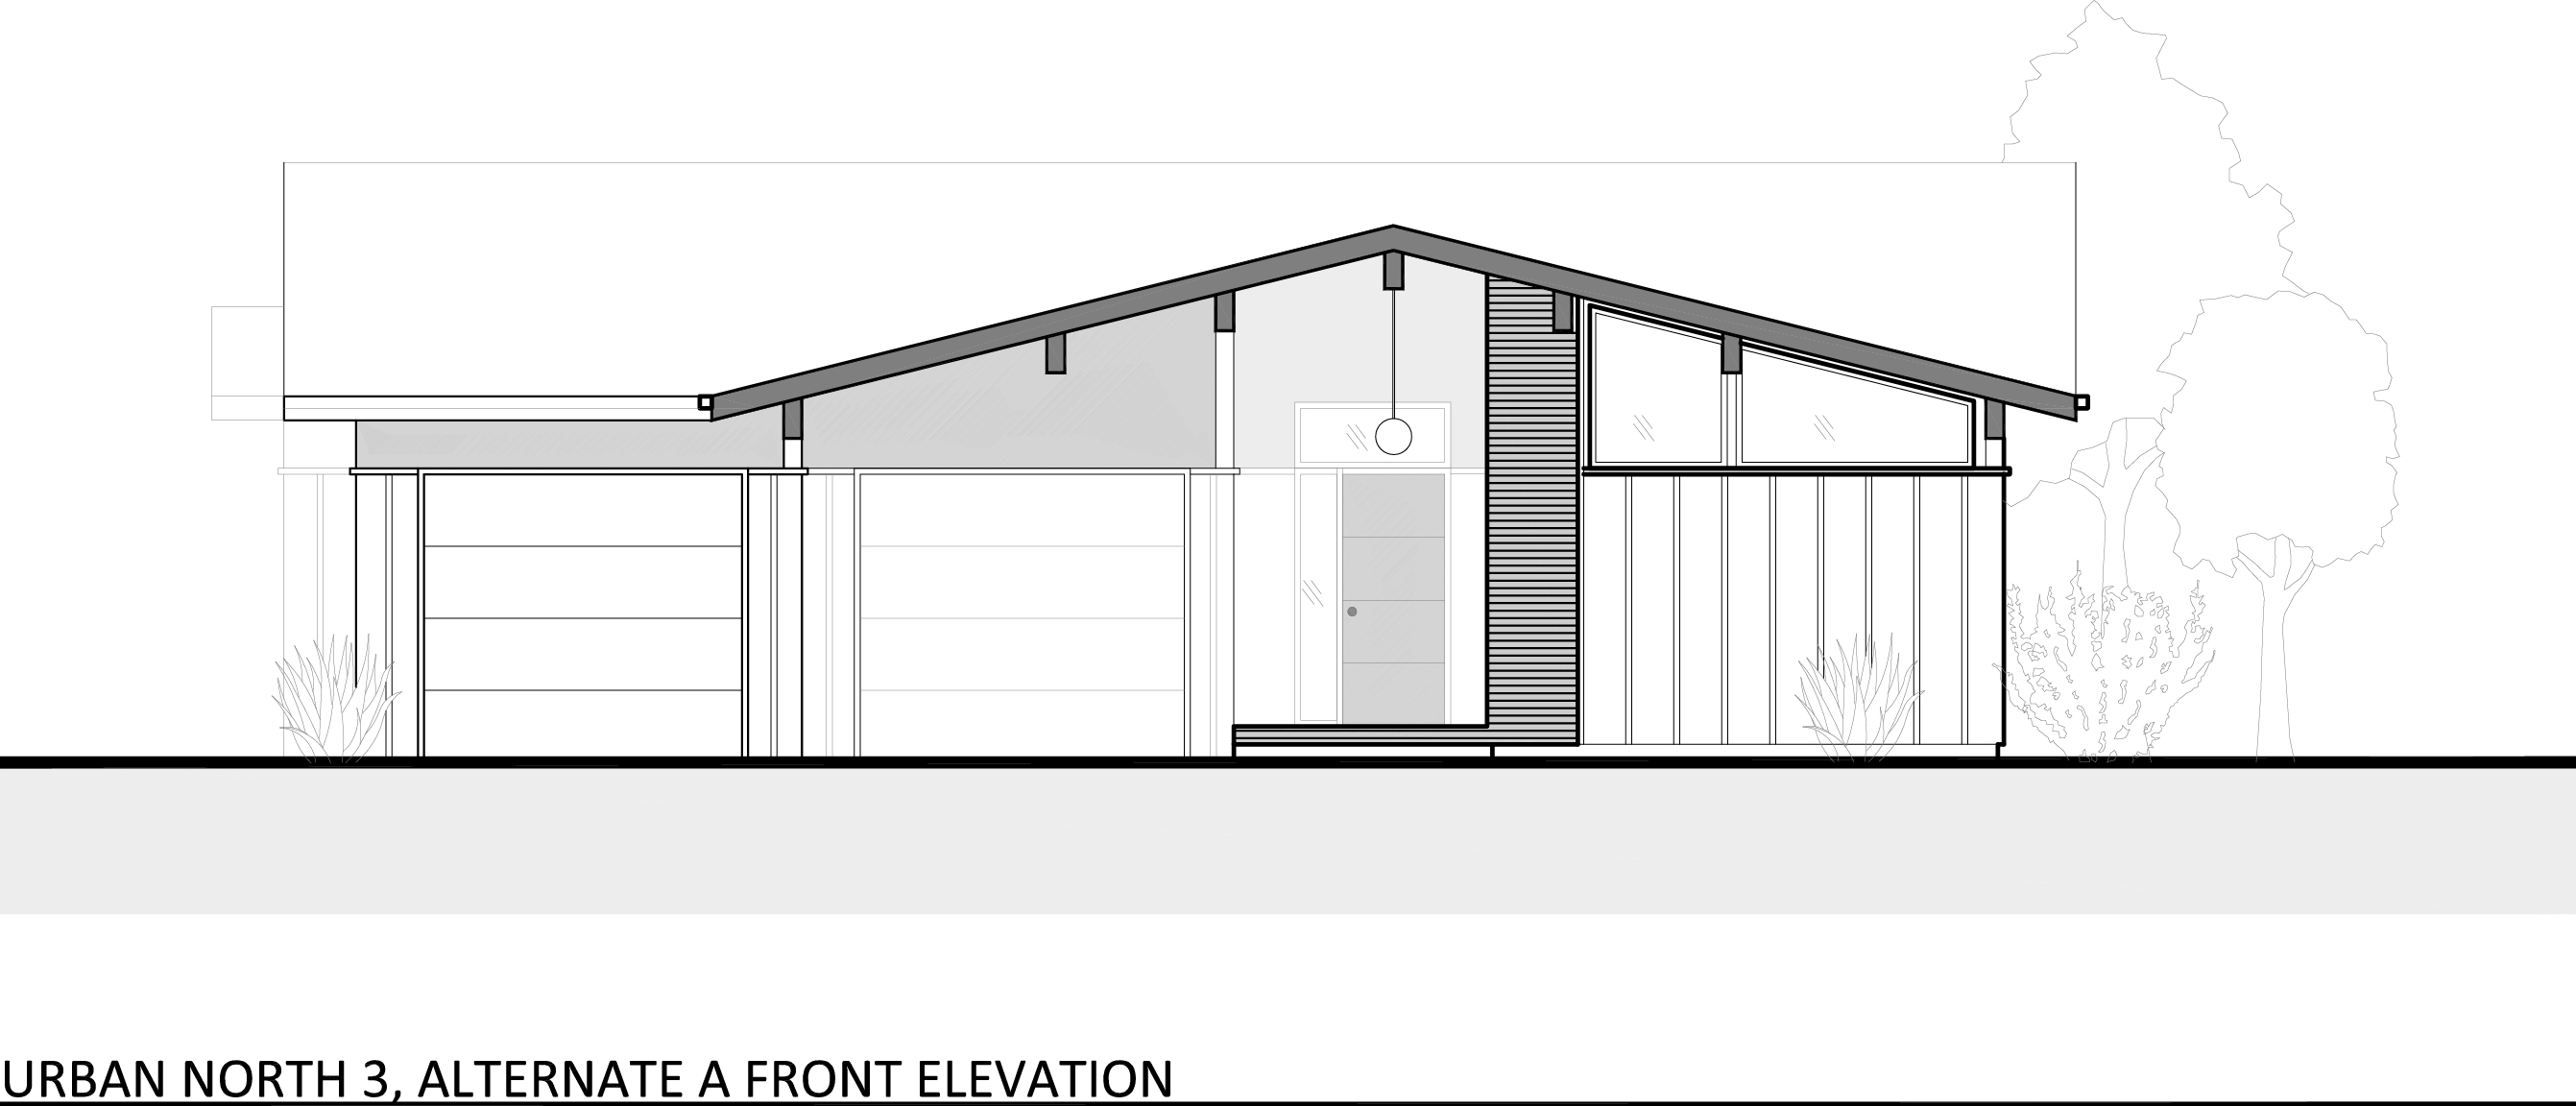 Urban North - House Plan 3 Alternate Elevation A